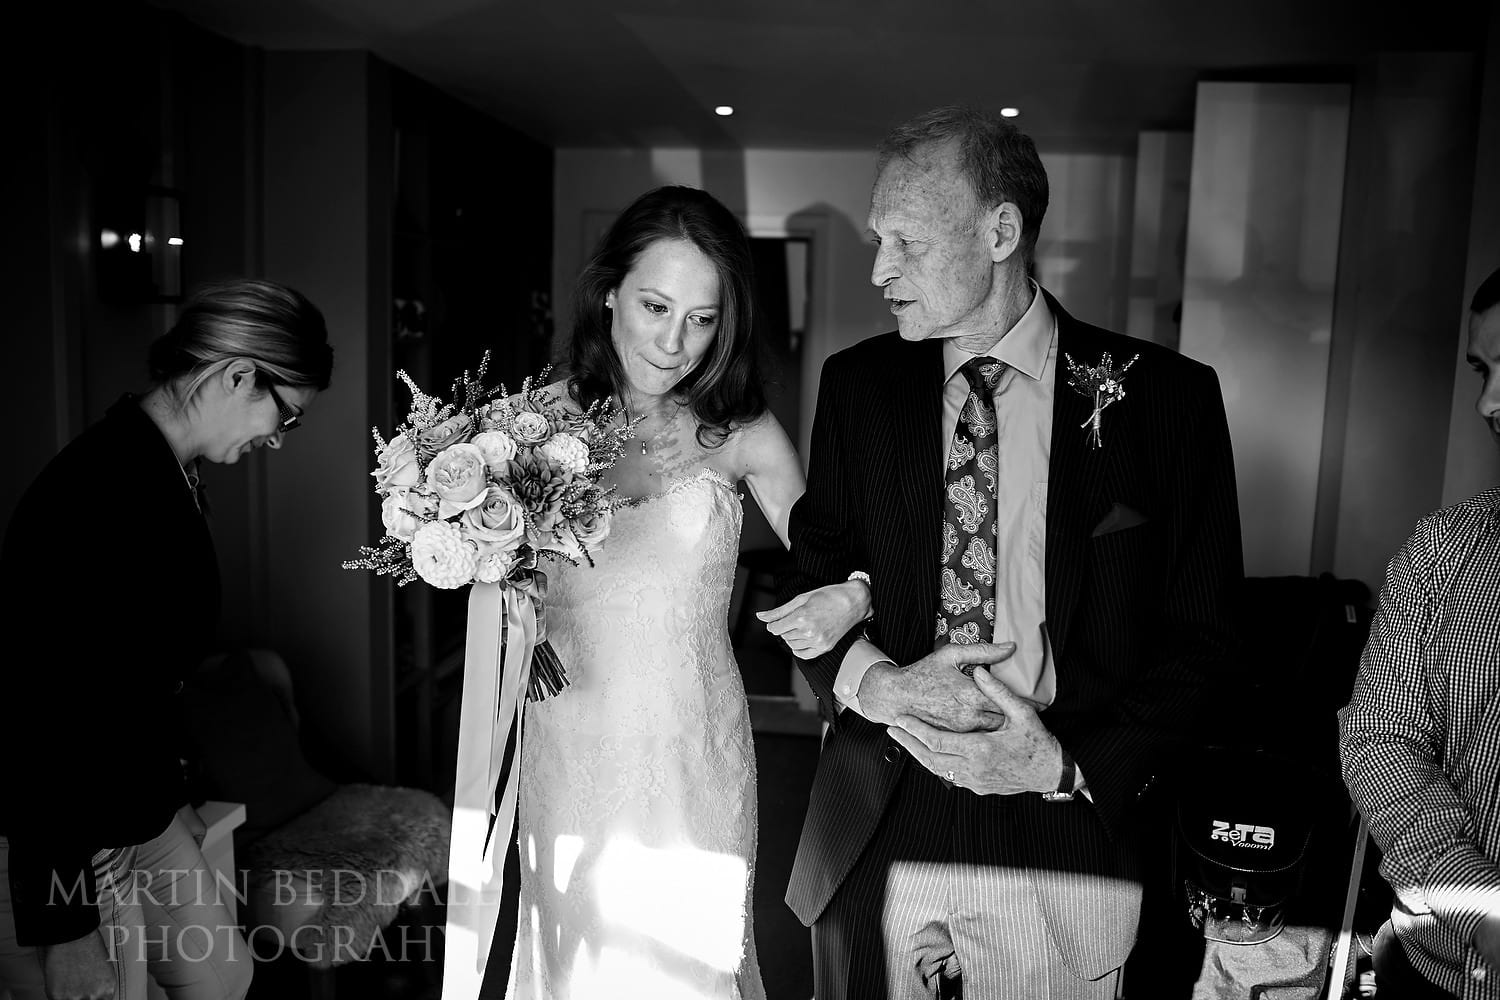 Emotional bride before walking up the aisle